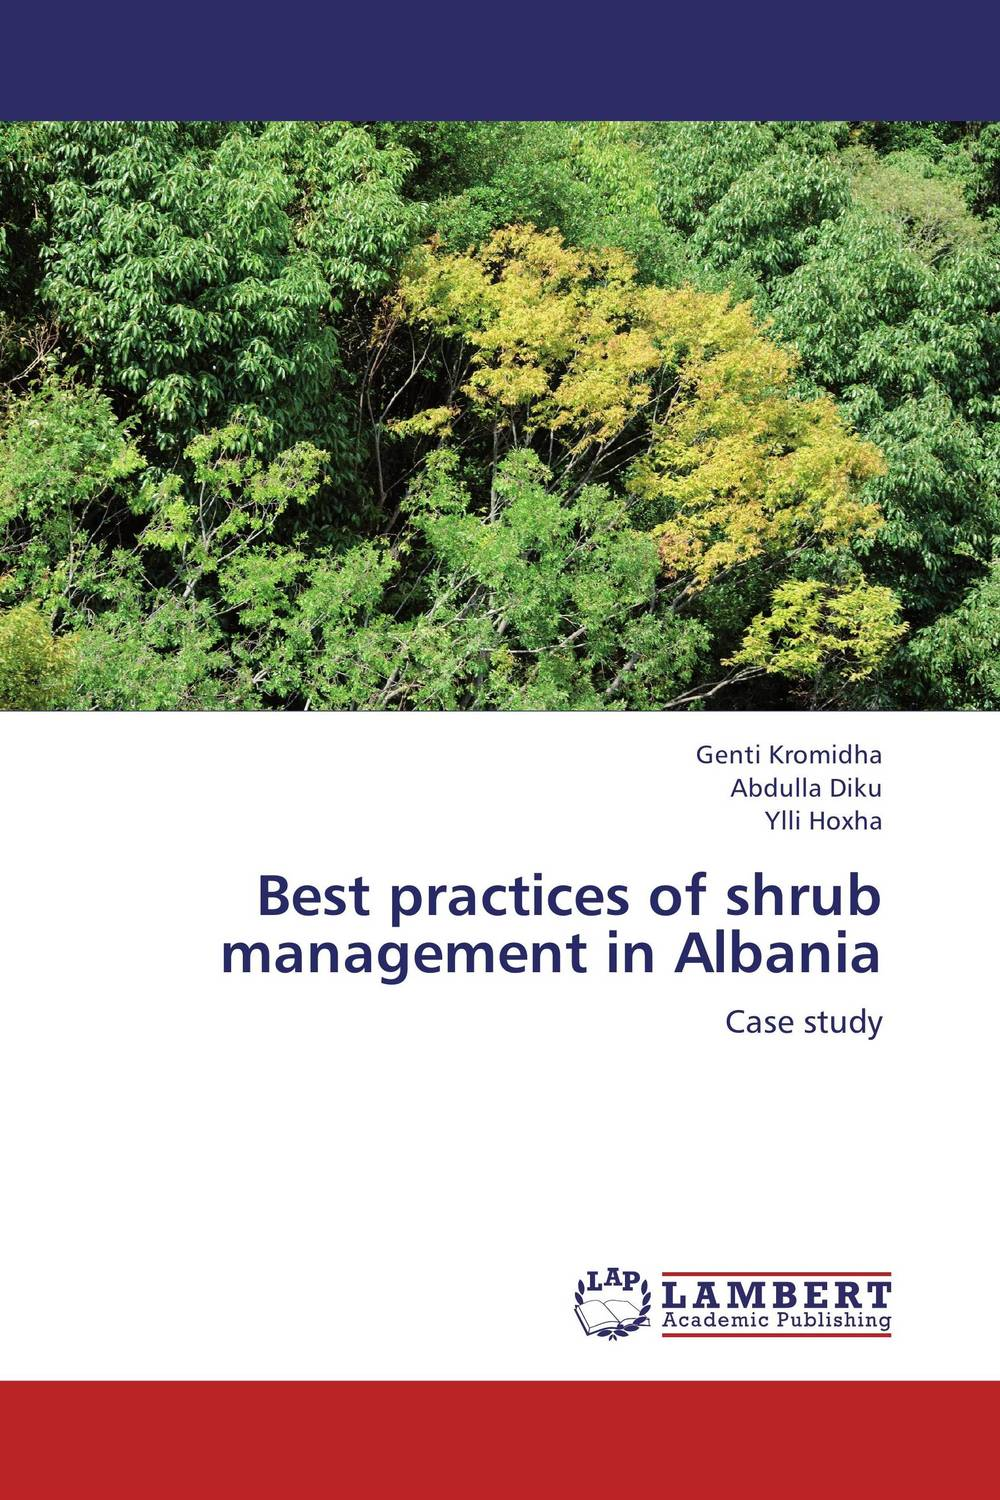 Best practices of shrub management in Albania role of women in agroforestry practices management